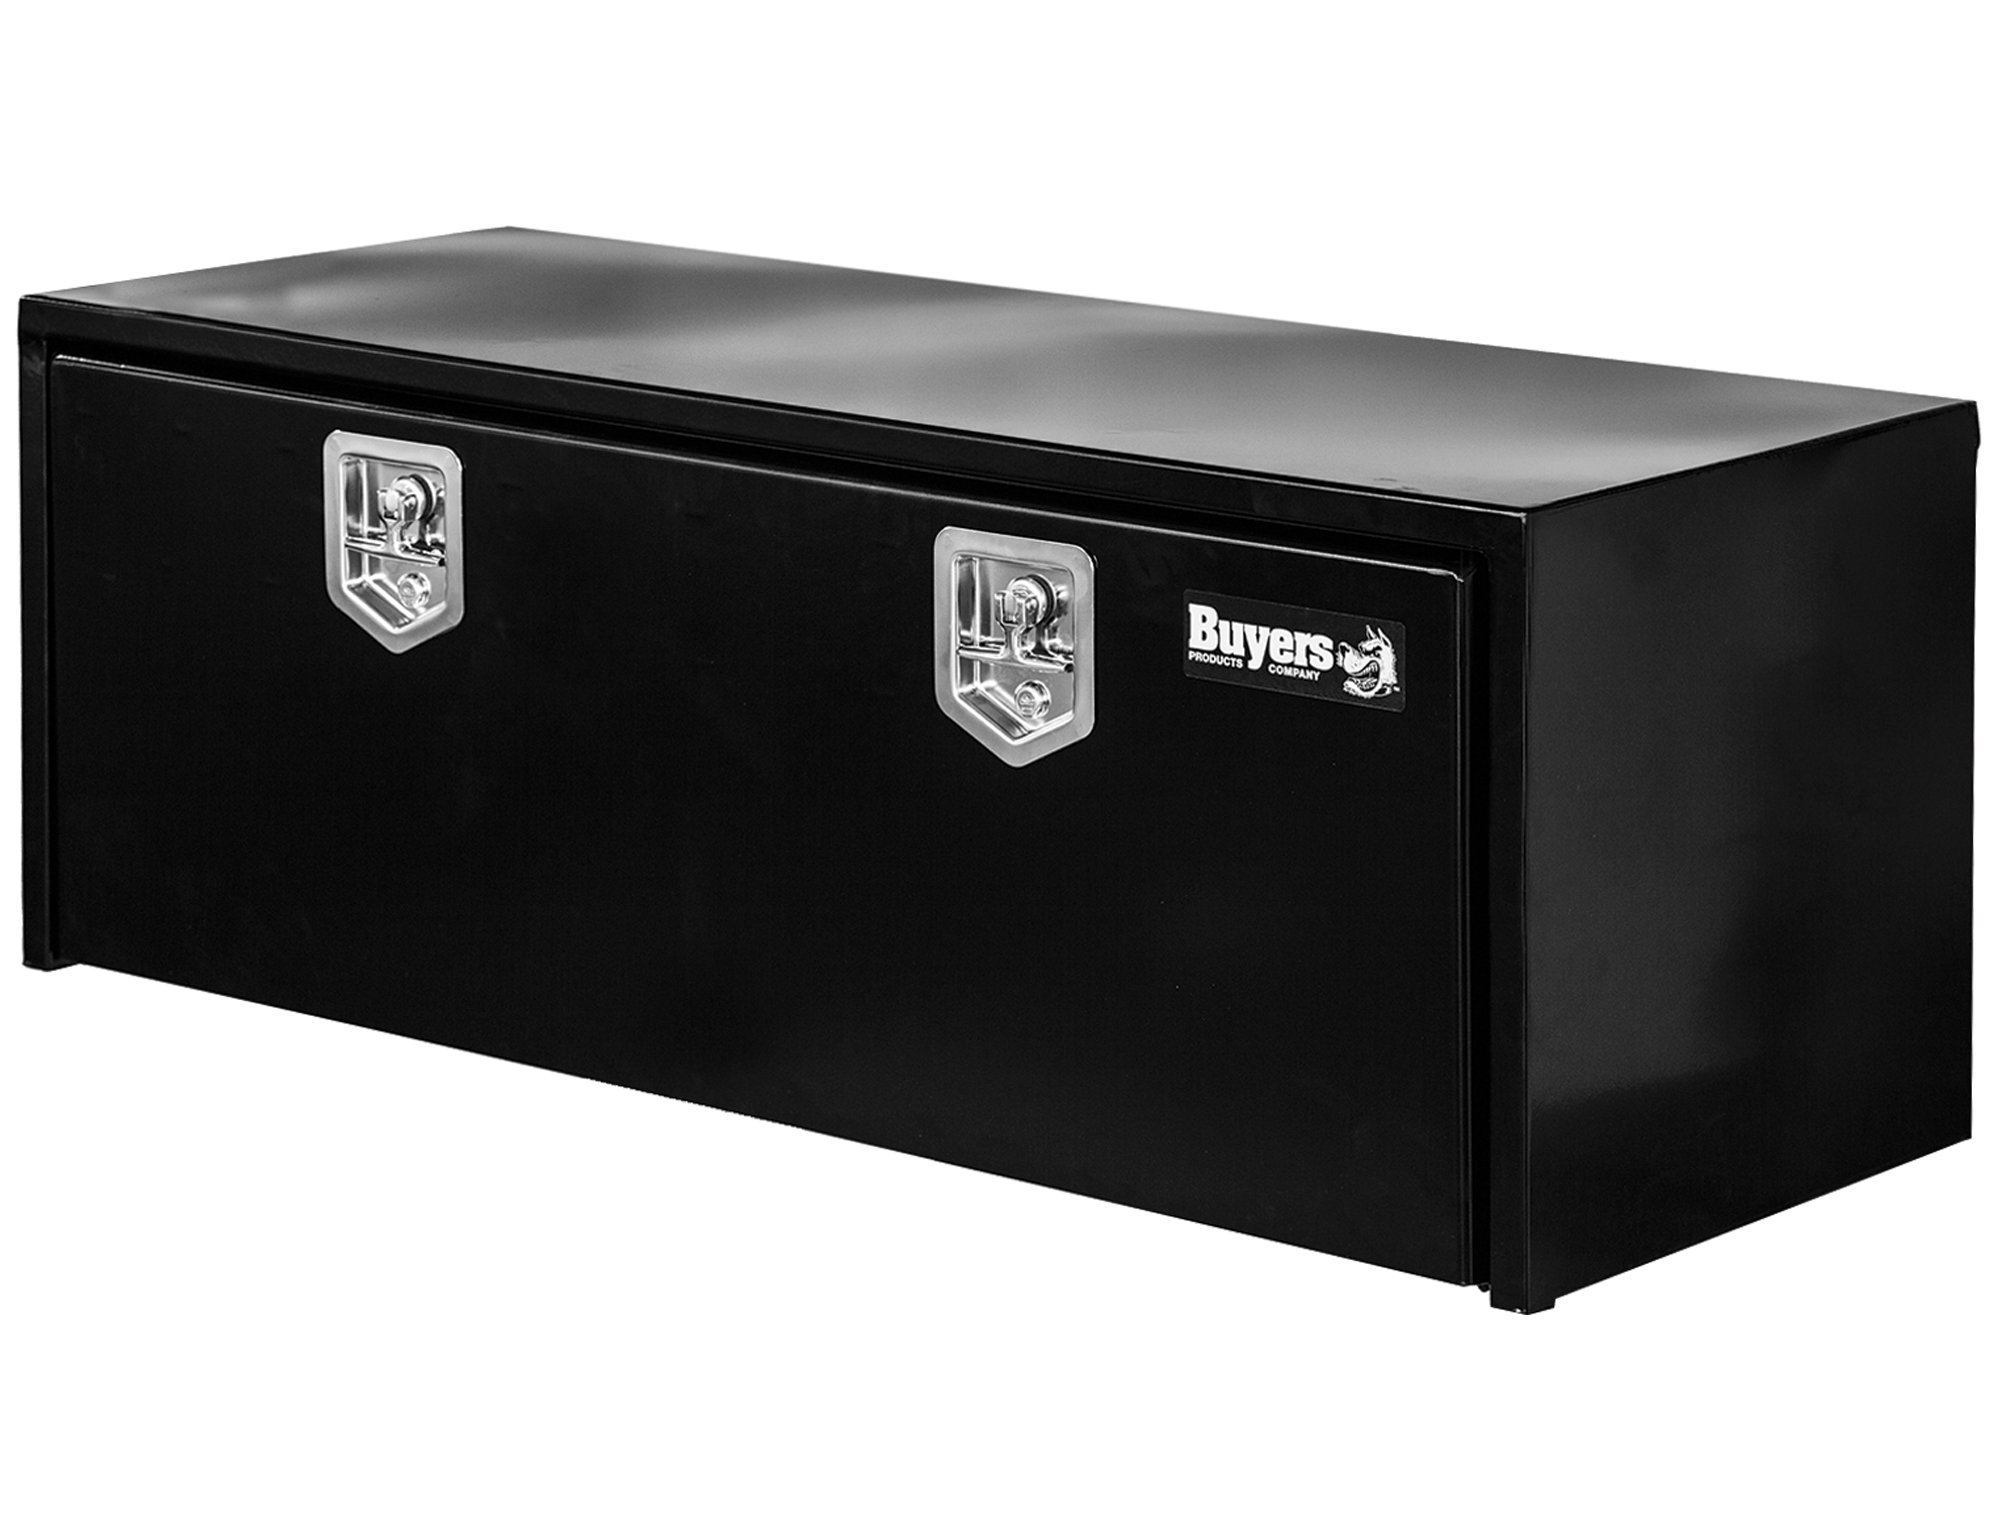 Buyers Products Black Steel Underbody Truck Box w/ T-Handle Latch (18x24x48 Inch)